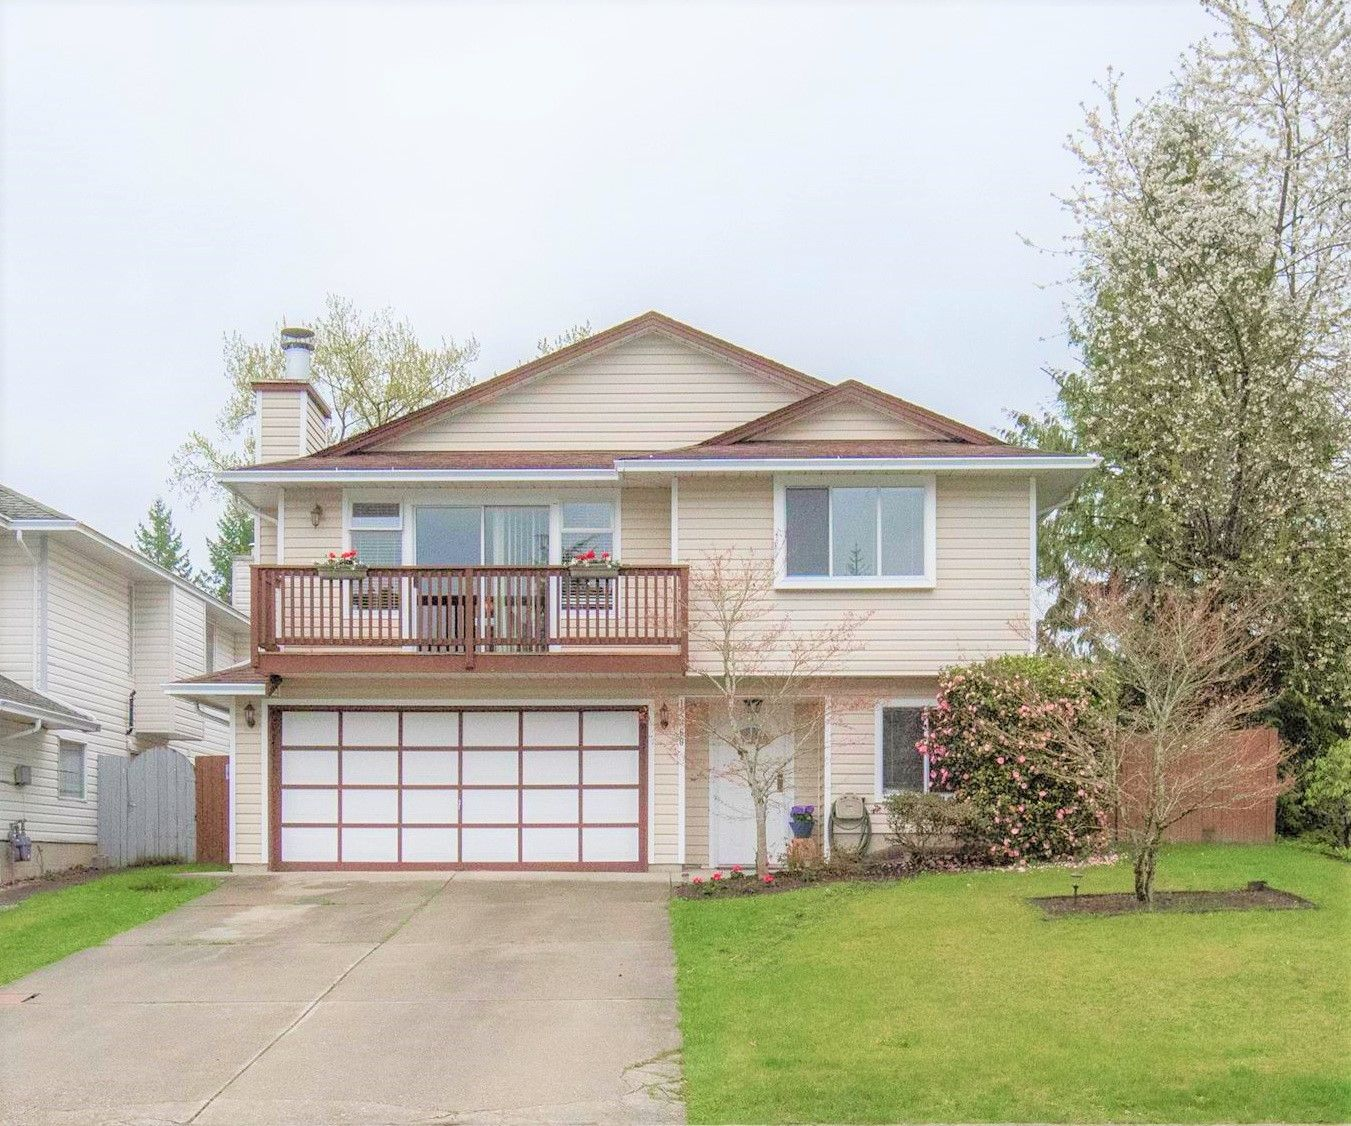 Main Photo: 12360 233 Street in Maple Ridge: East Central House for sale : MLS®# R2357272